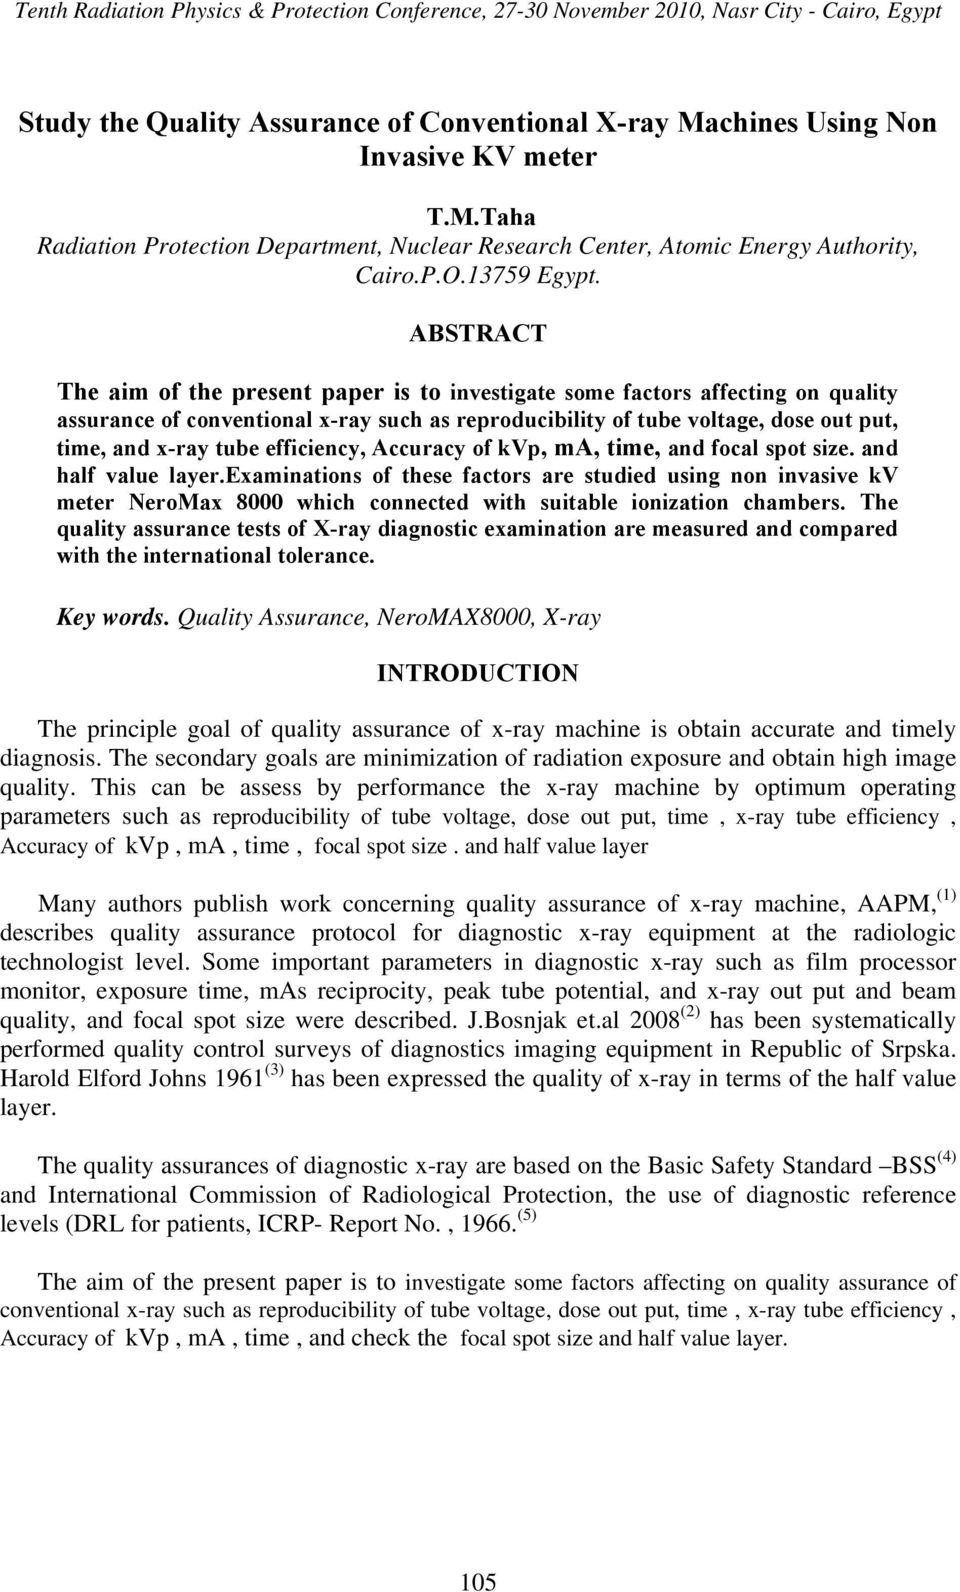 ABSTRACT The aim of the present paper is to investigate some factors affecting on quality assurance of conventional x-ray such as reproducibility of tube voltage, dose out put, time, and x-ray tube